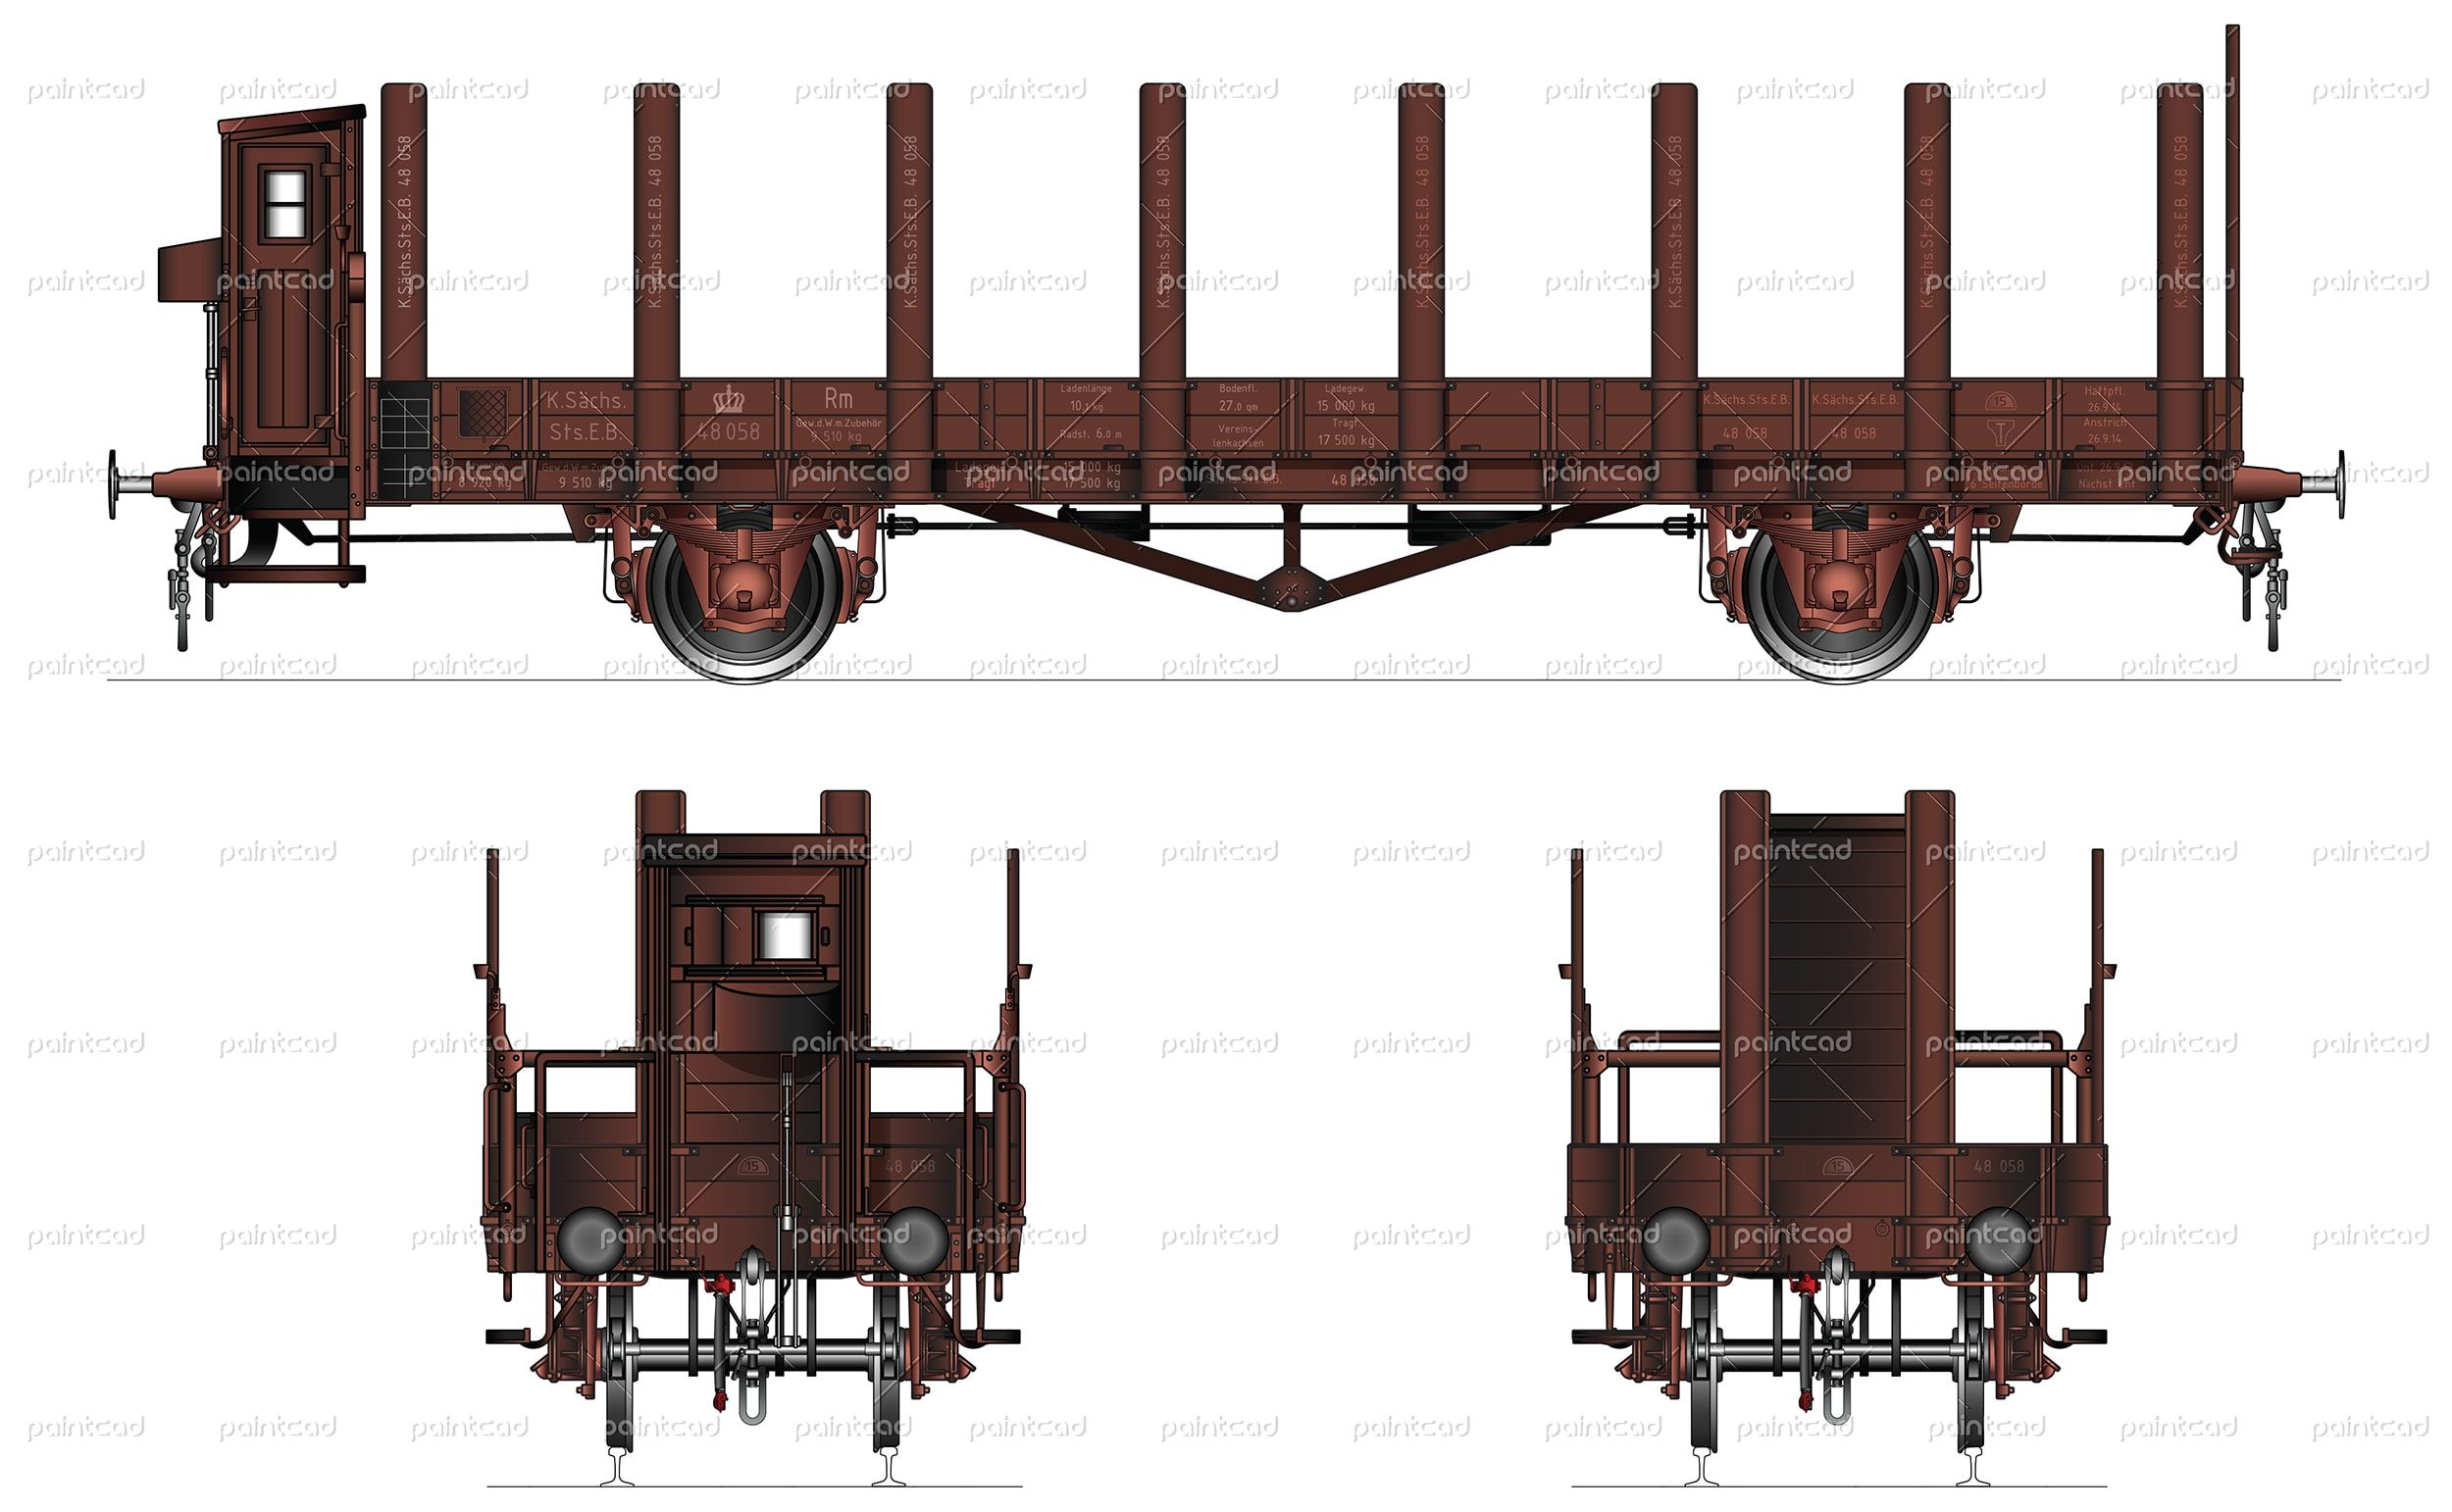 Open Freight Wagon Type Rm With Brakeman Cabin Operated By The